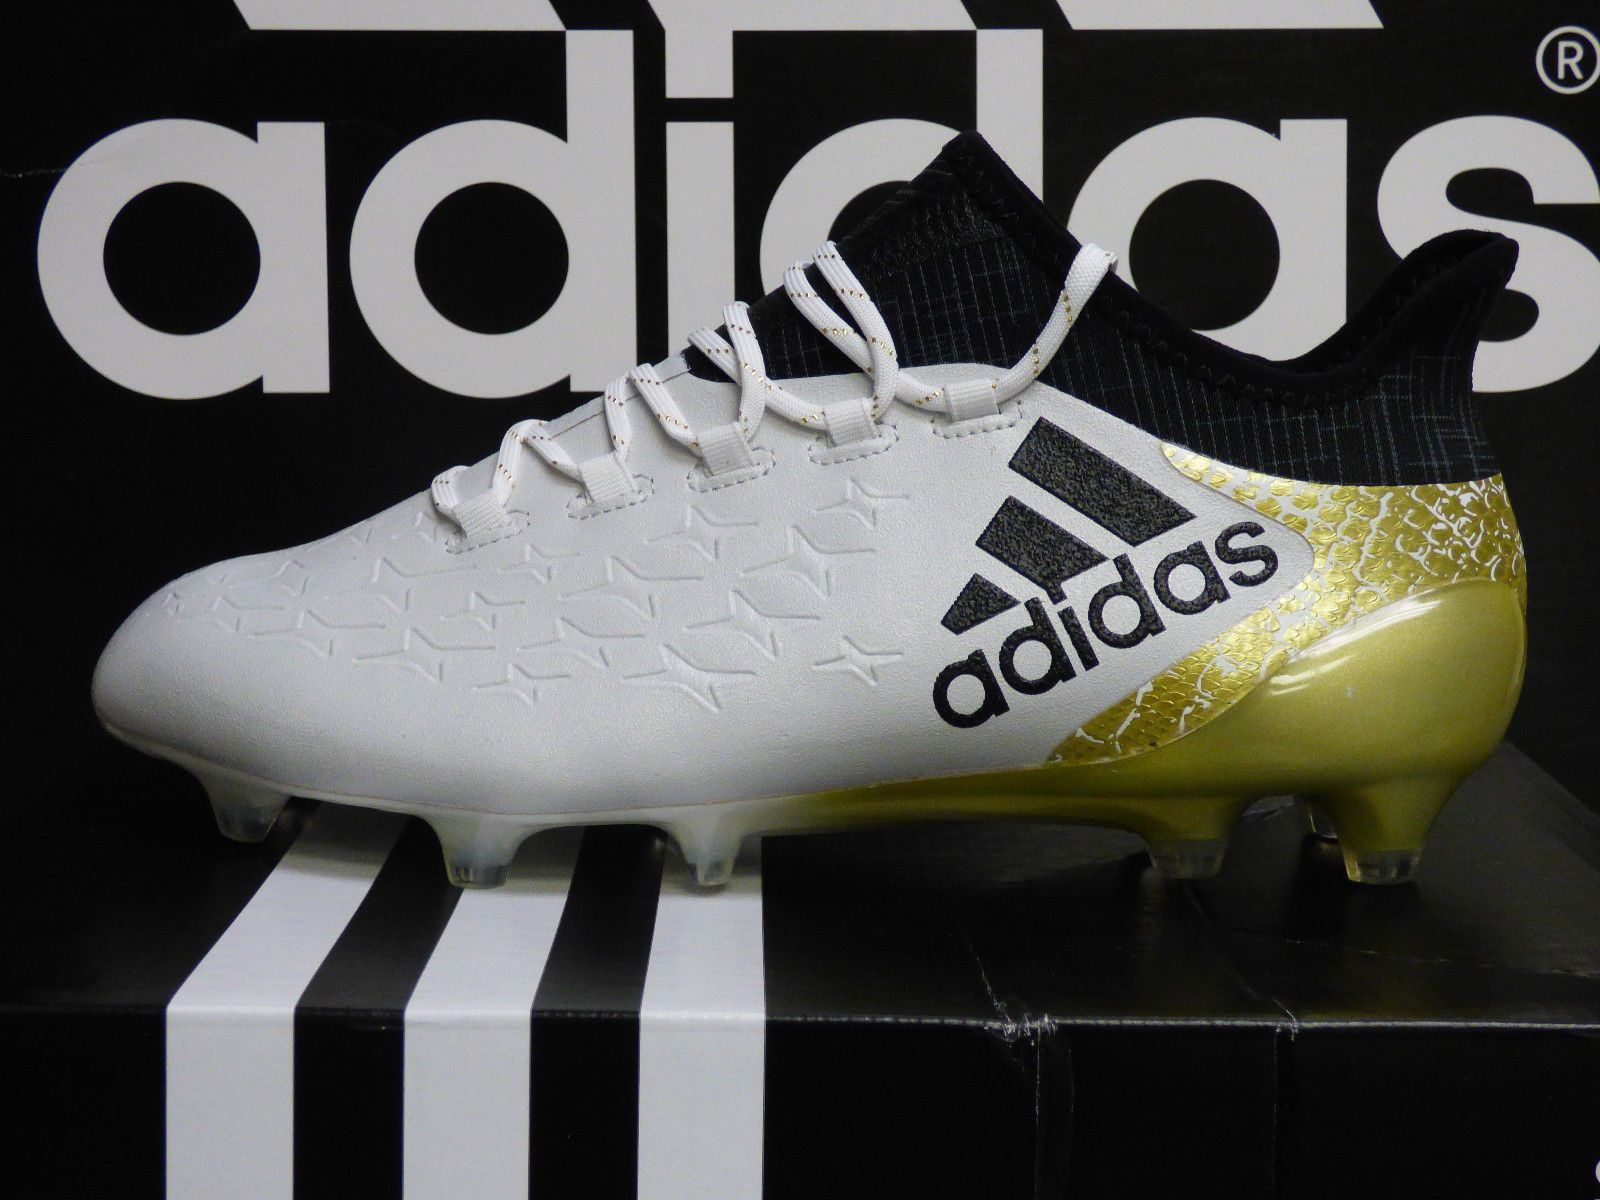 16 Ground New Authentic 1 Adidas Soccer X Mens White Cleats Firm HtFw1q